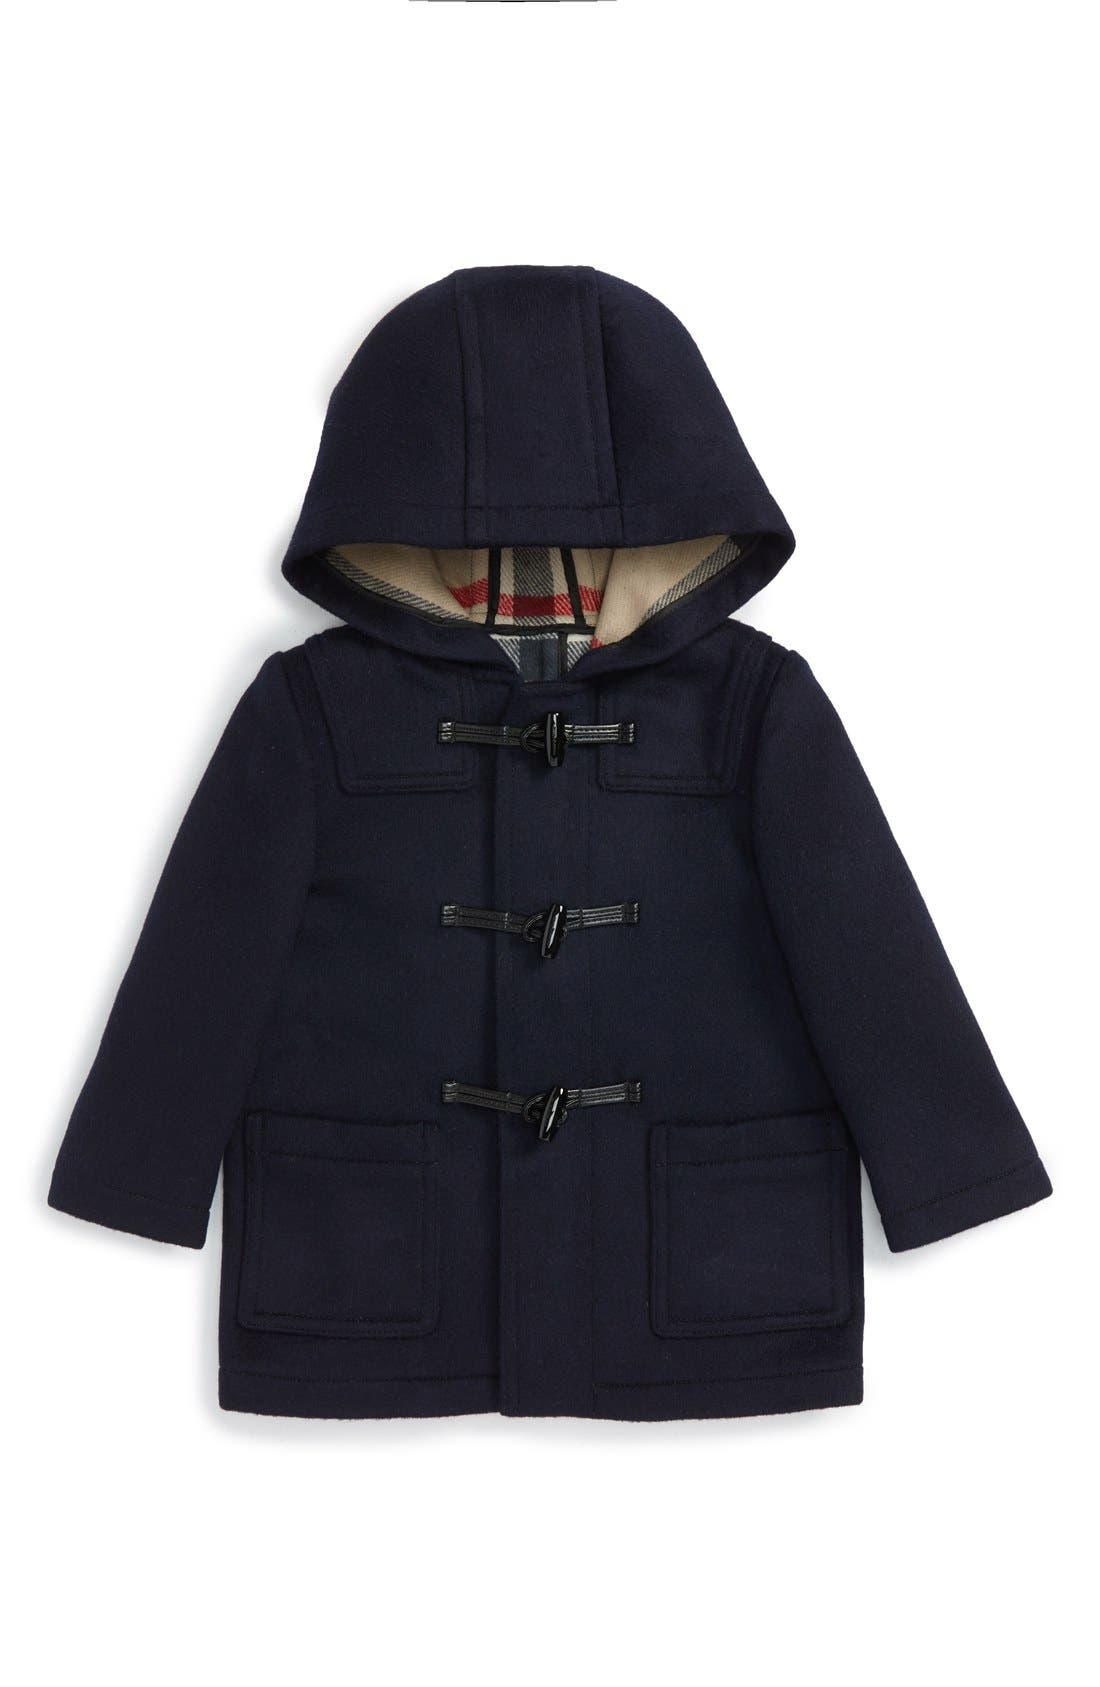 Alternate Image 1 Selected - Burberry 'Brogan' Hooded Wool Toggle Coat (Toddler Boys)